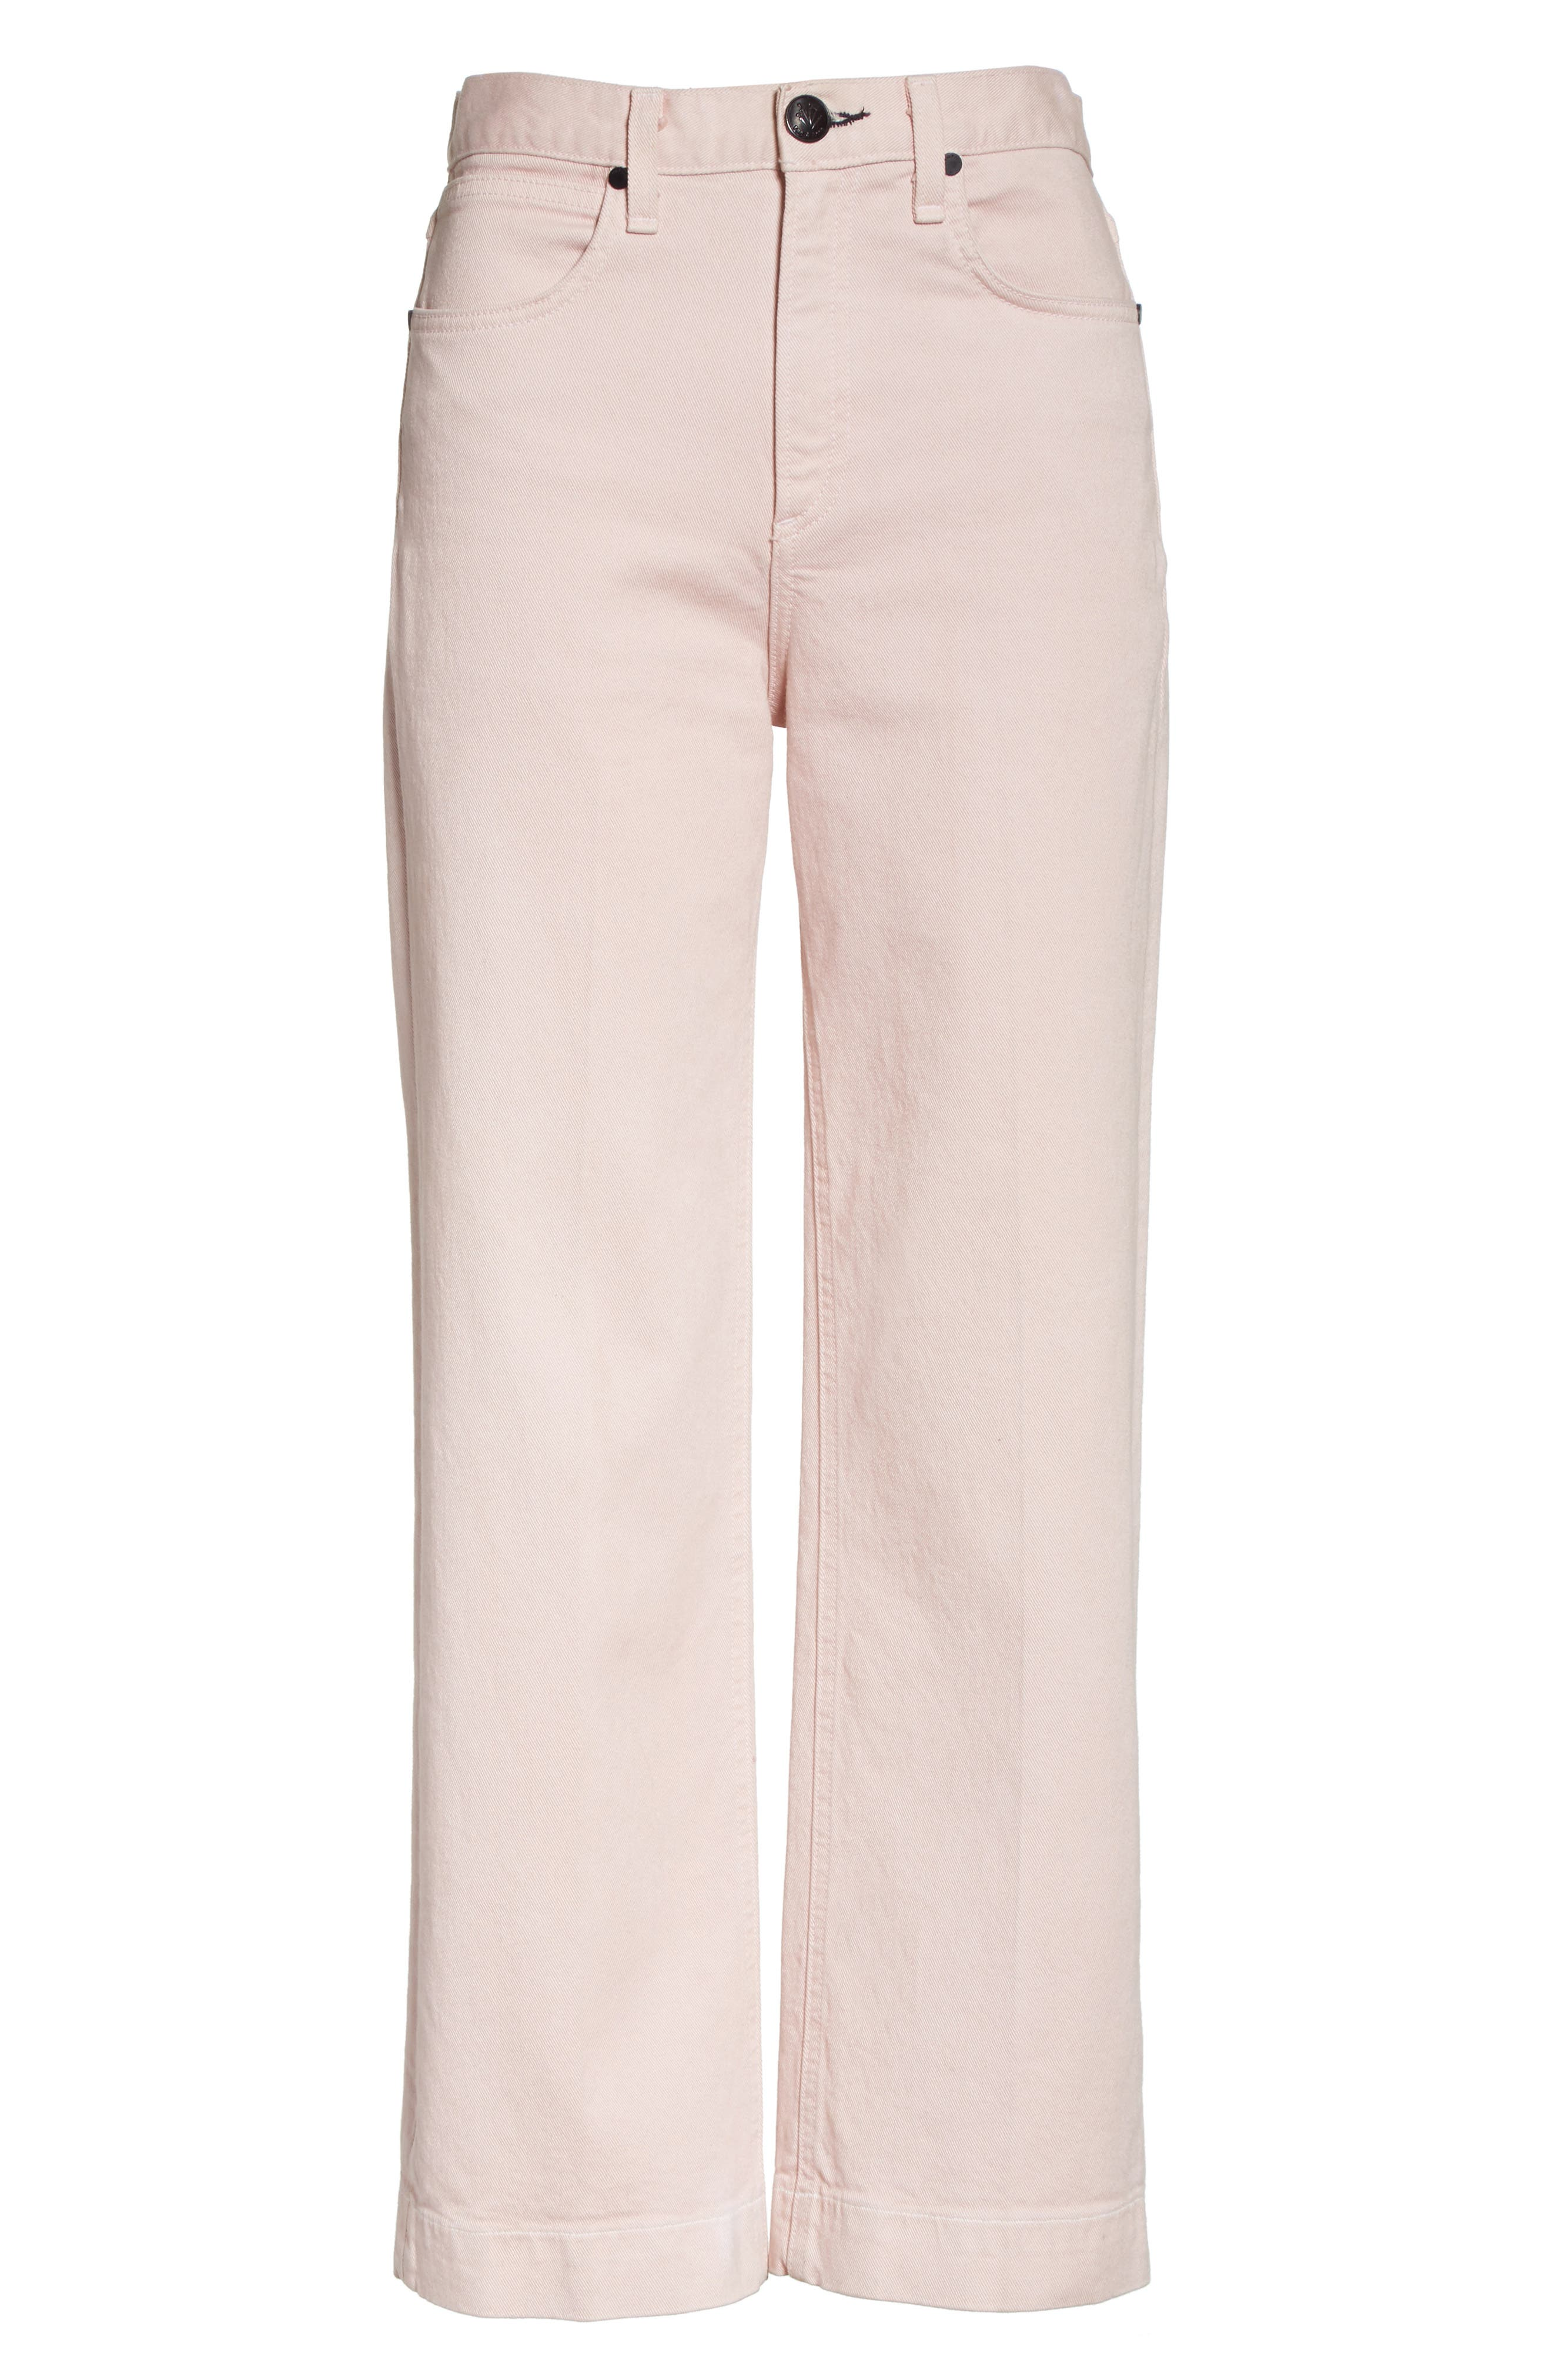 Justine High Waist Trouser Jeans,                             Alternate thumbnail 7, color,                             Blush Twill